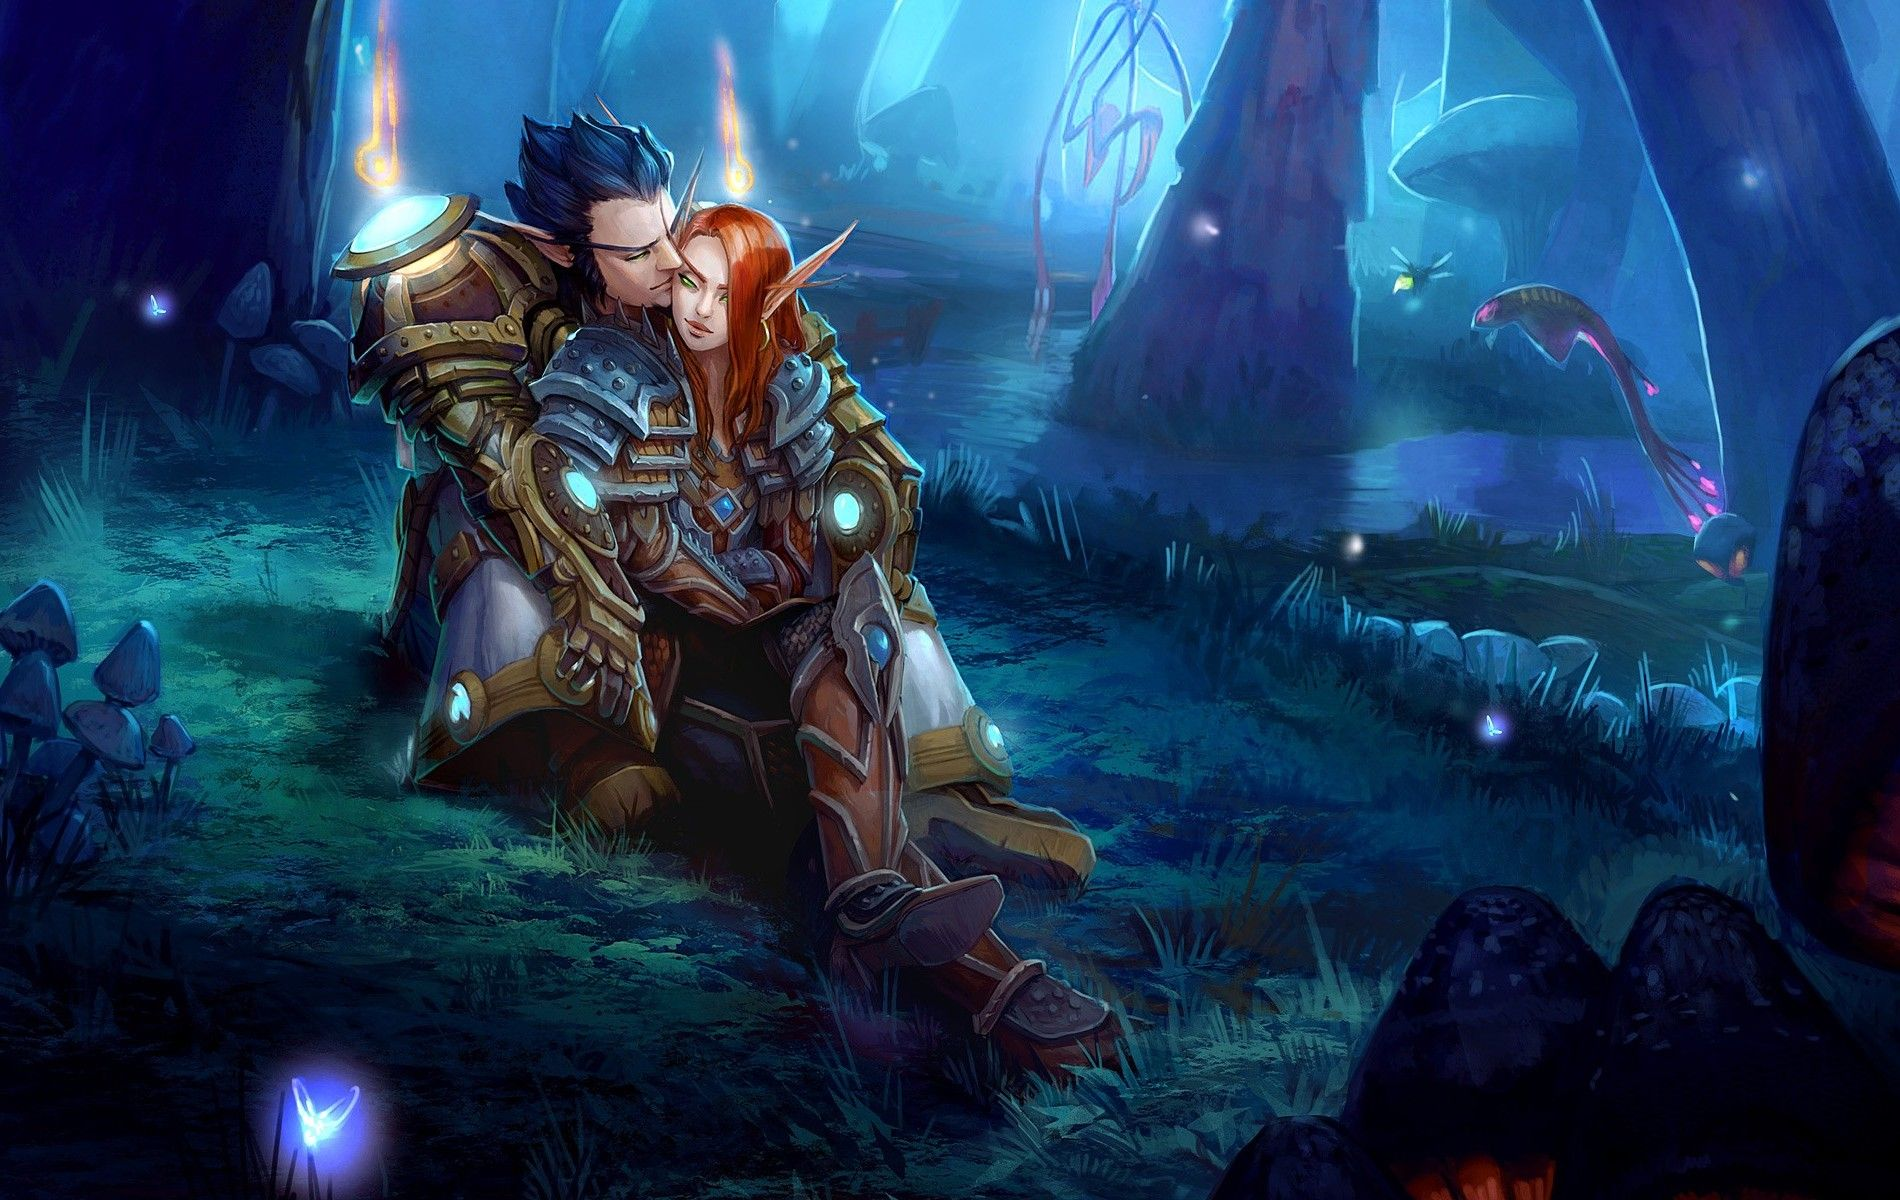 Warcraft Night Elf Wallpapers Top Free Warcraft Night Elf